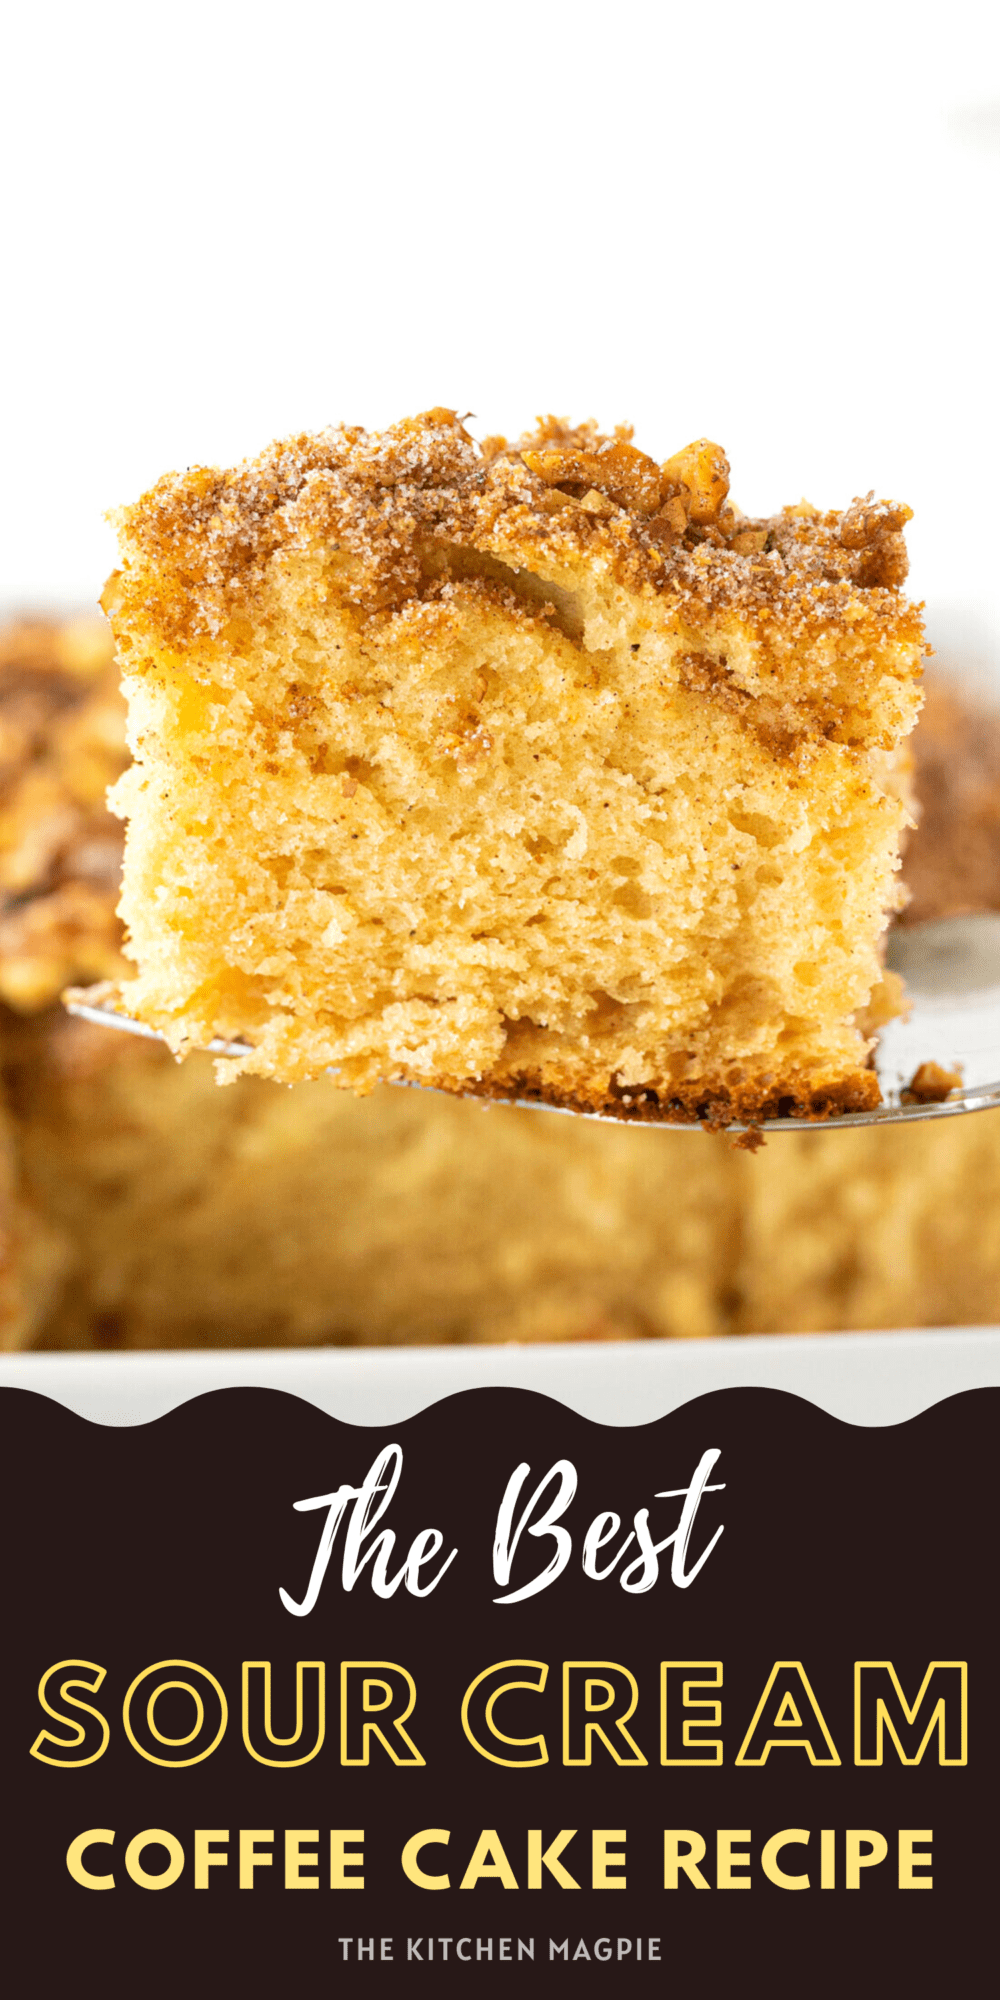 This sour cream coffee cake is a dense, tangy coffee cake topped with a decadent crunchy brown sugar and walnut topping.